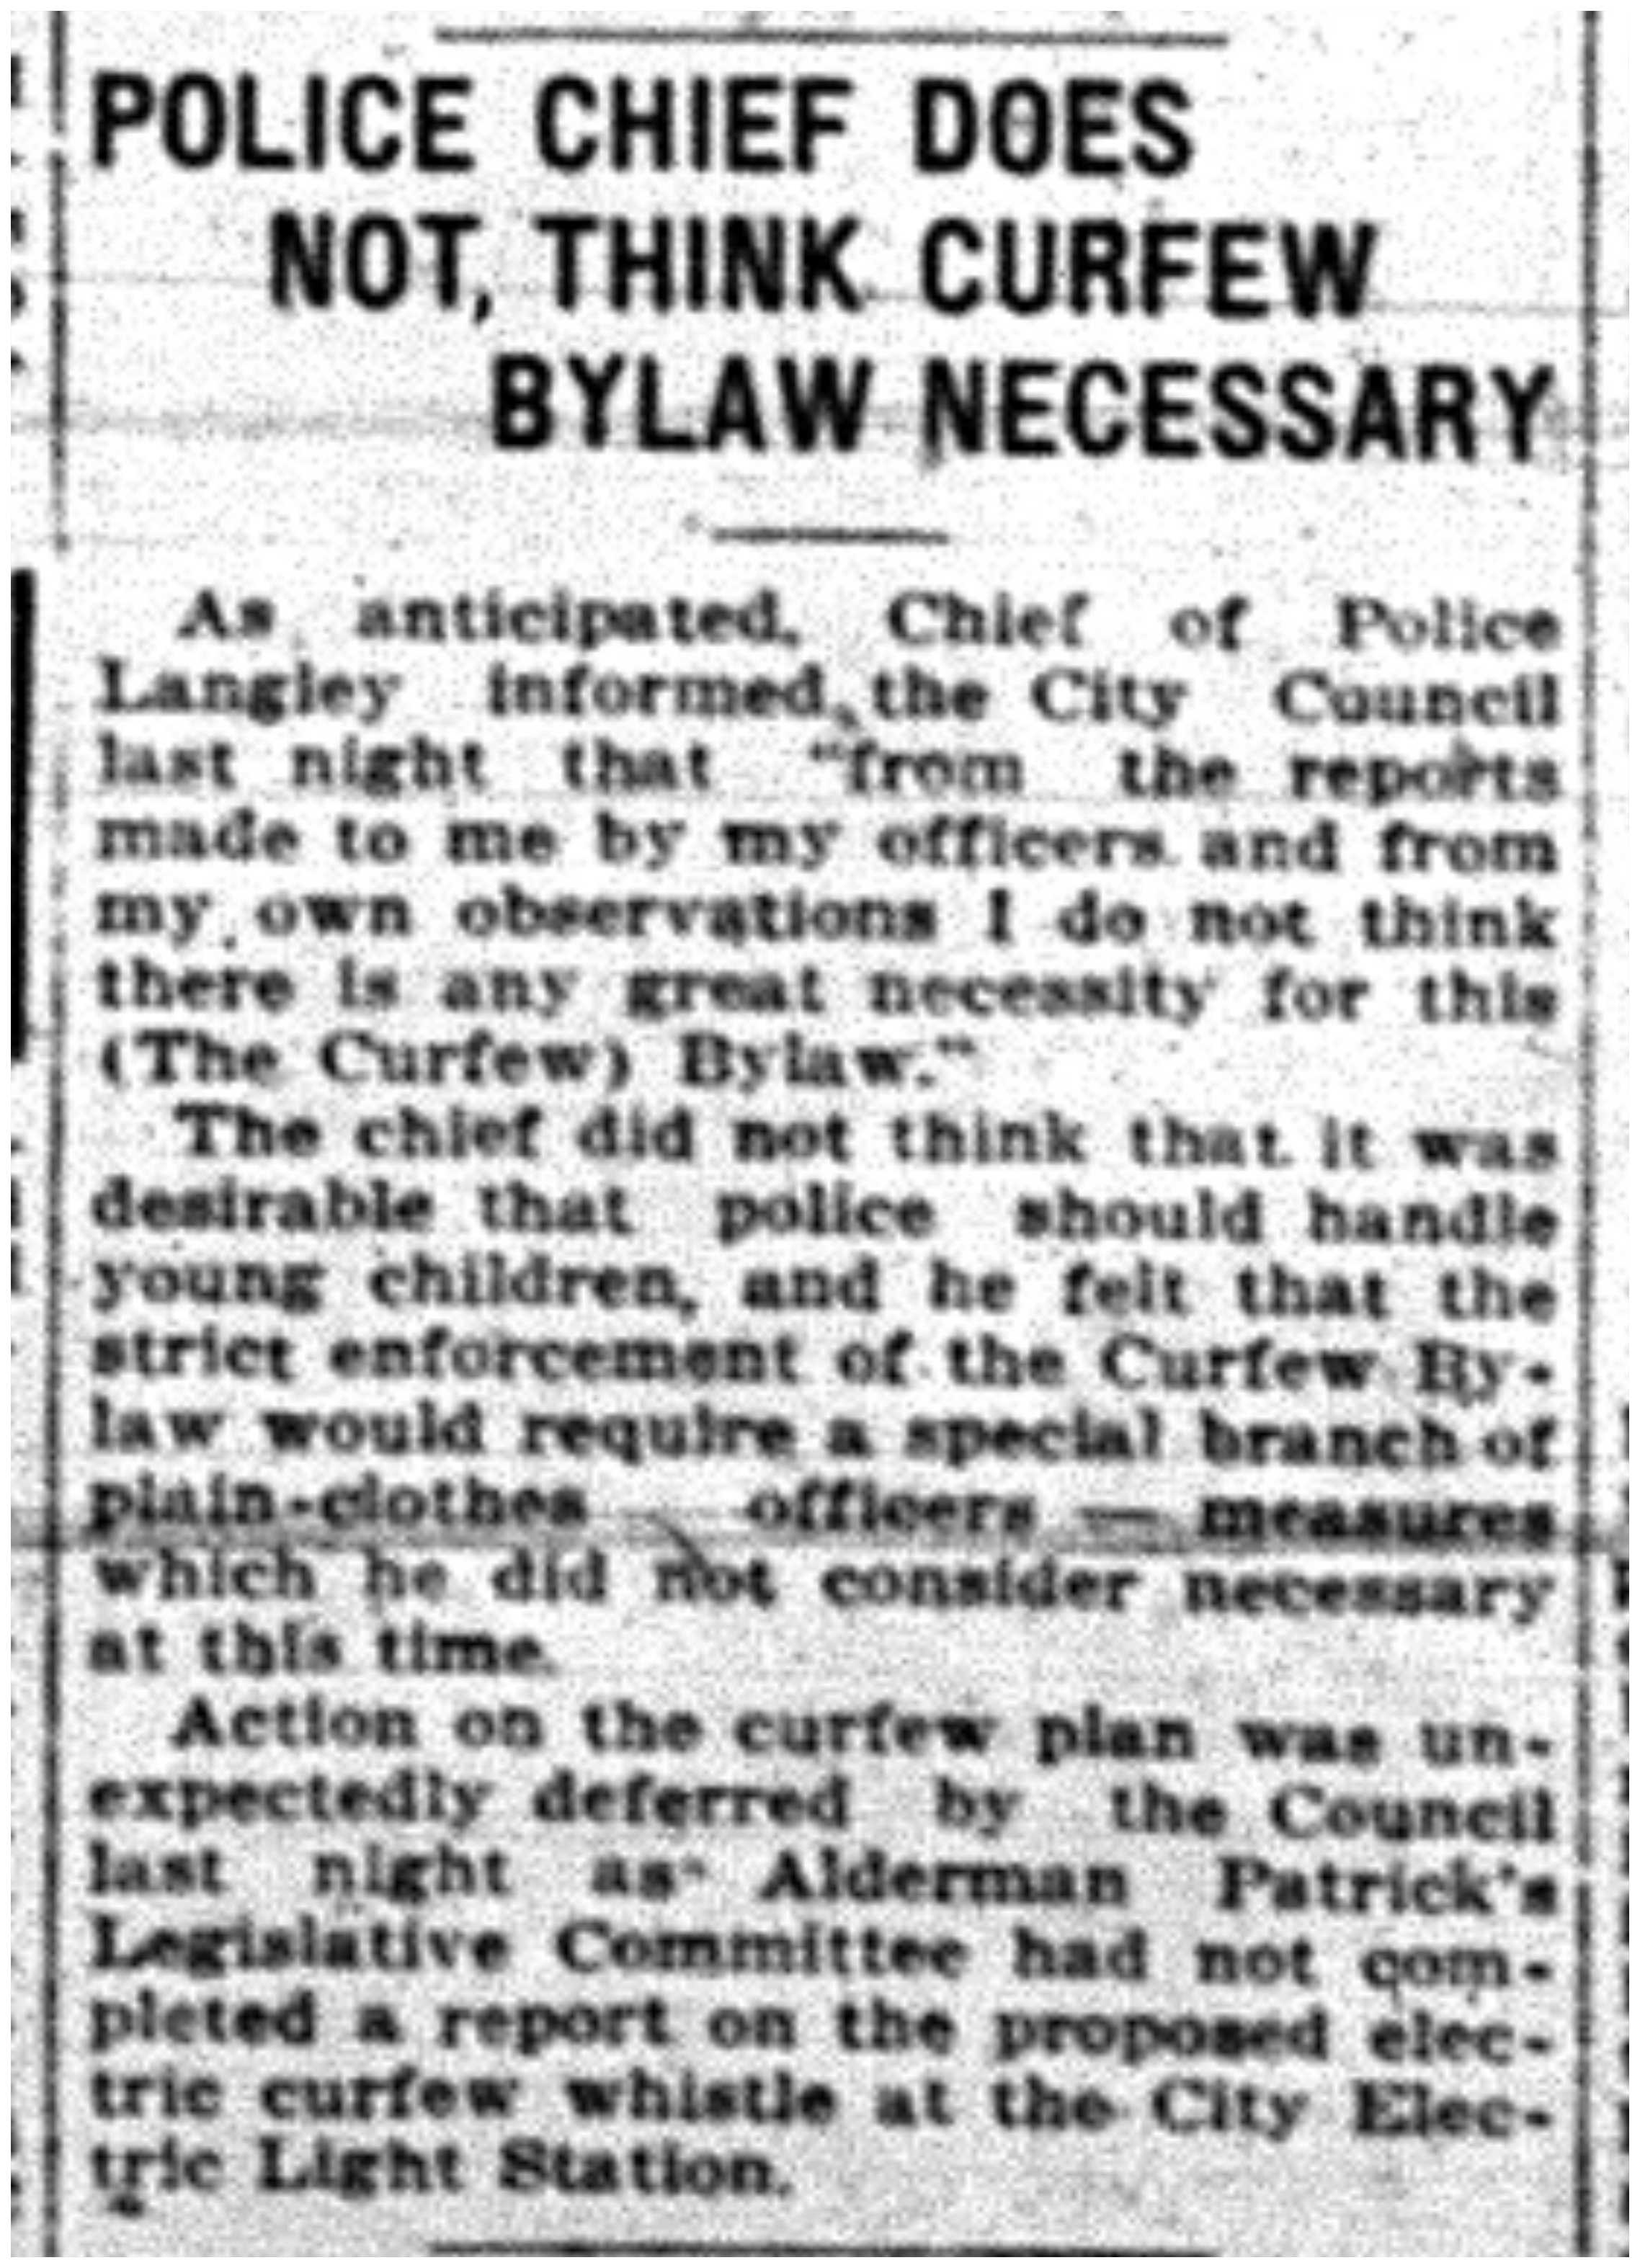 """Police Chief Does Not, Think Curfew Bylaw Necessary""-jpg"